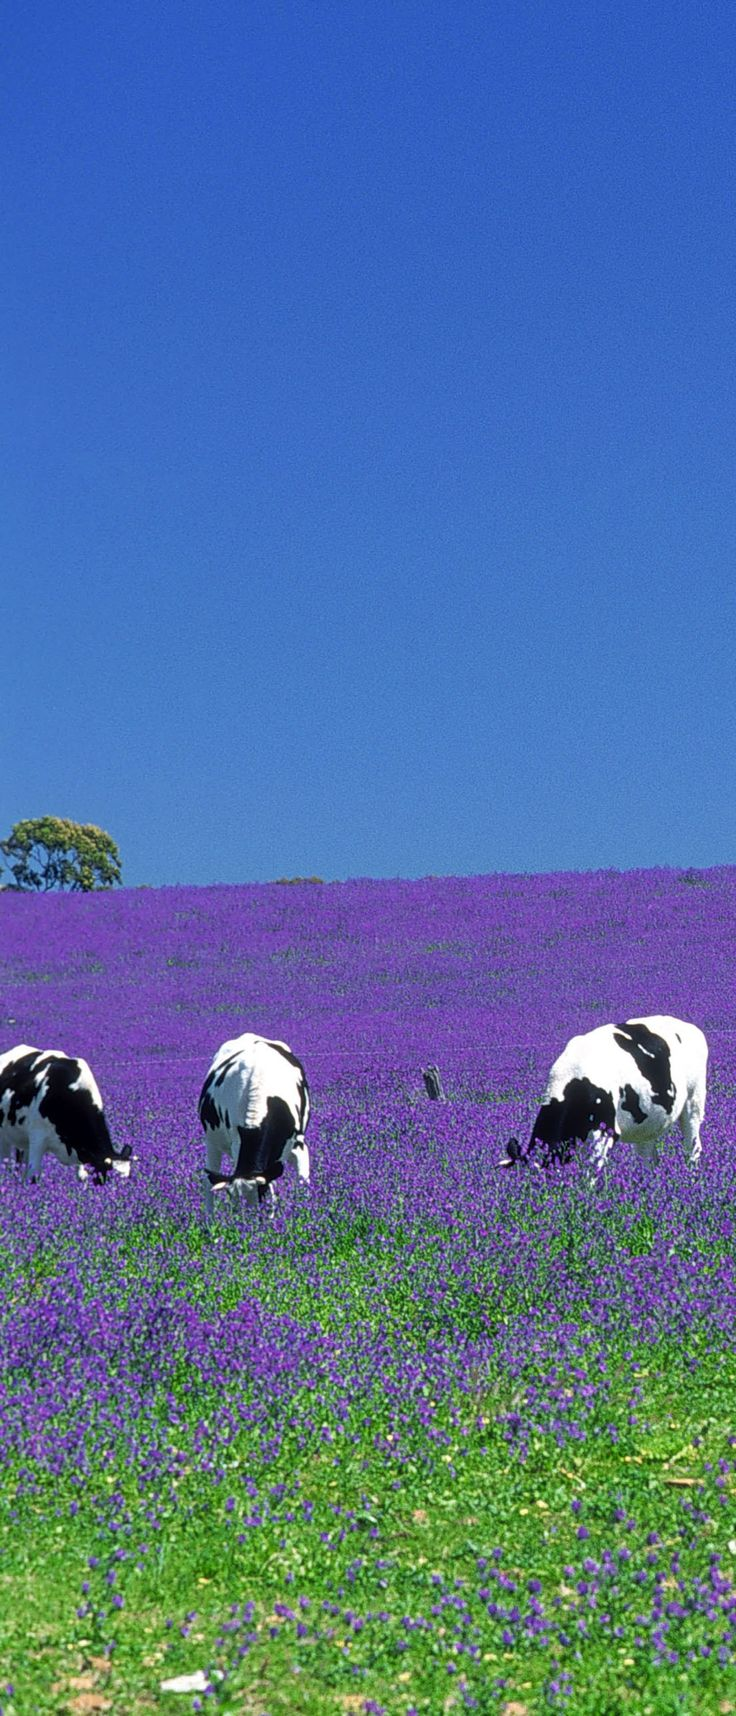 Cows grazing in Salvation Jane pasture, Clare Valley, South Australia. Two-hour drive from Adelaide. Stunning Color!